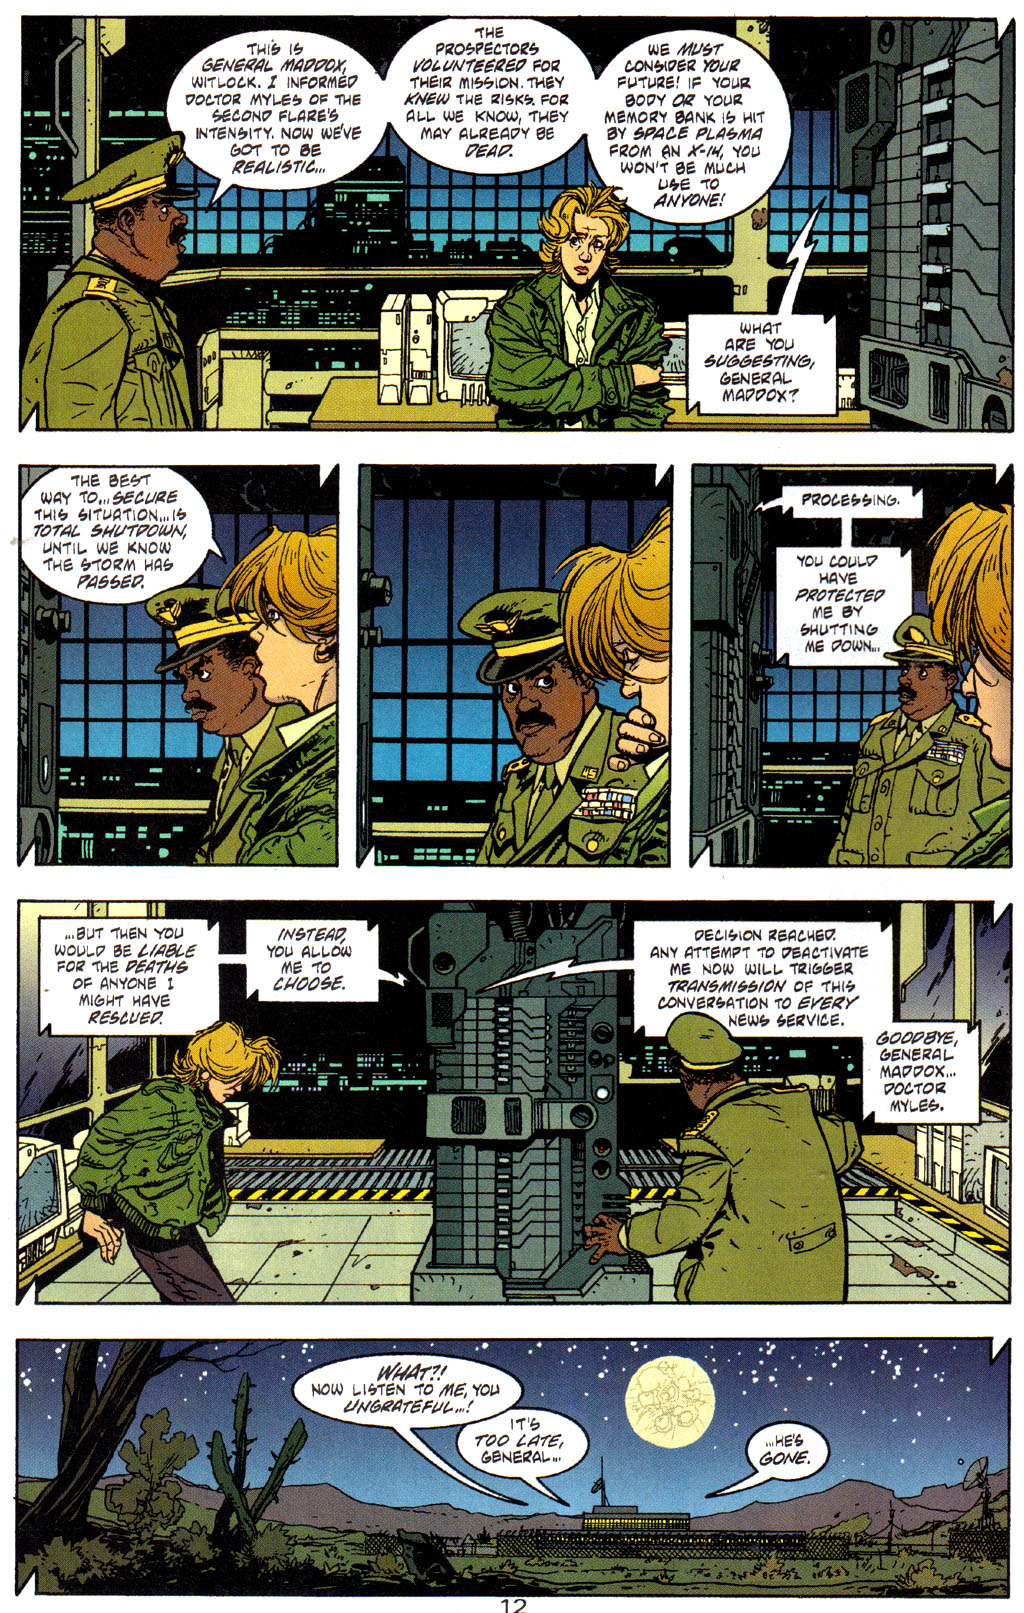 Read online Trouble Magnet comic -  Issue #3 - 13